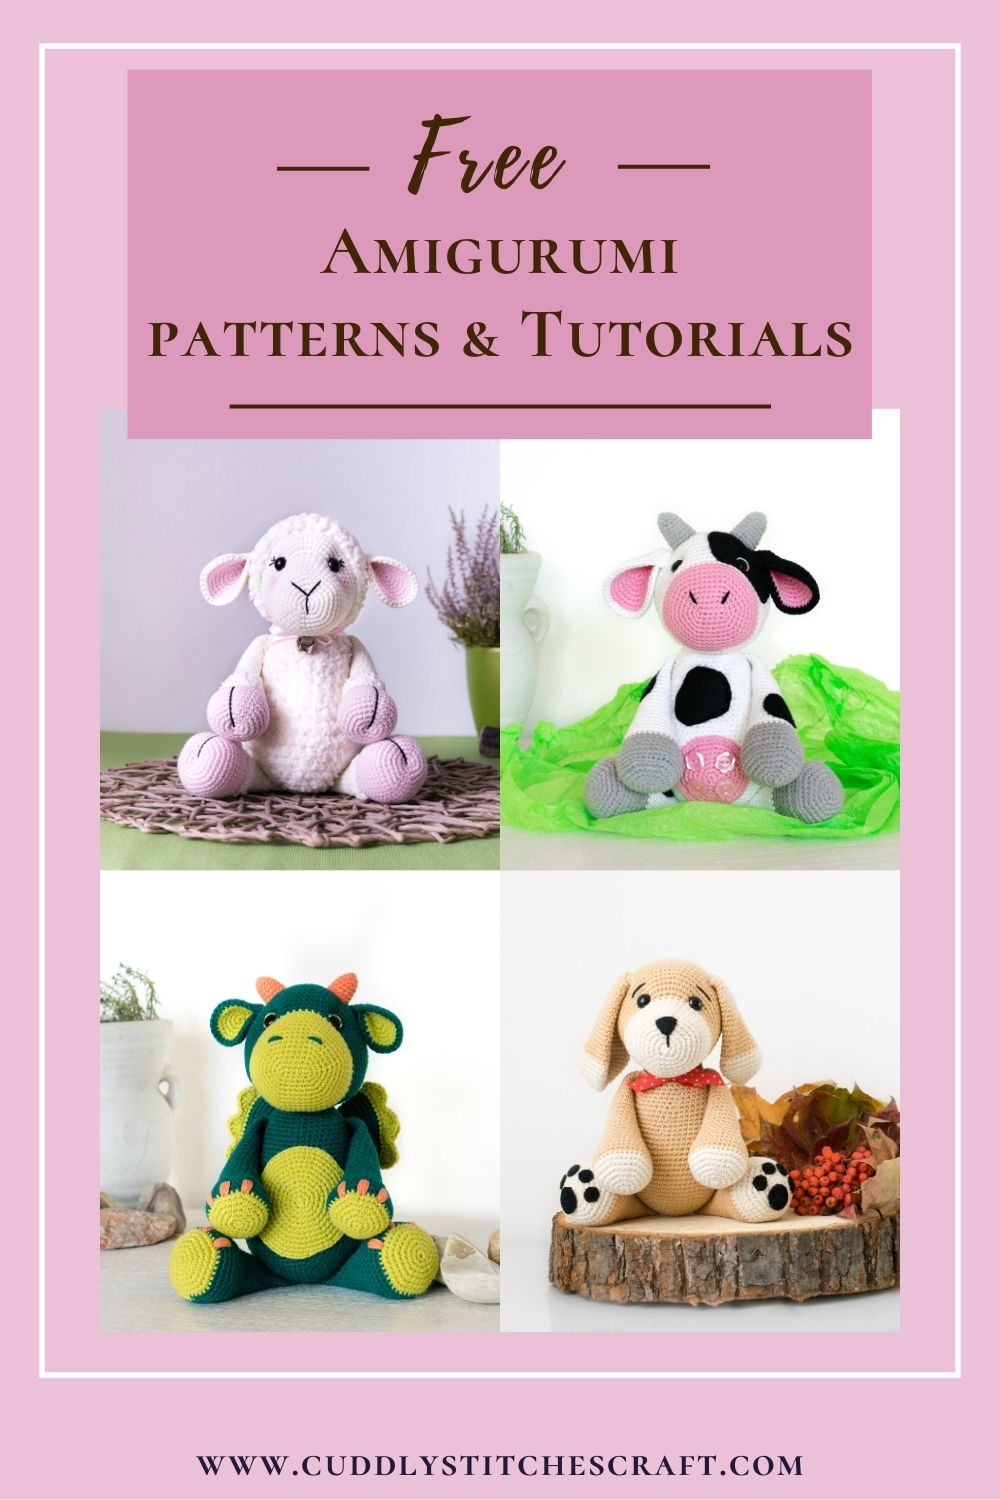 Free Amigurumi Patterns and Tutorials by Cuddly Stitches Craft